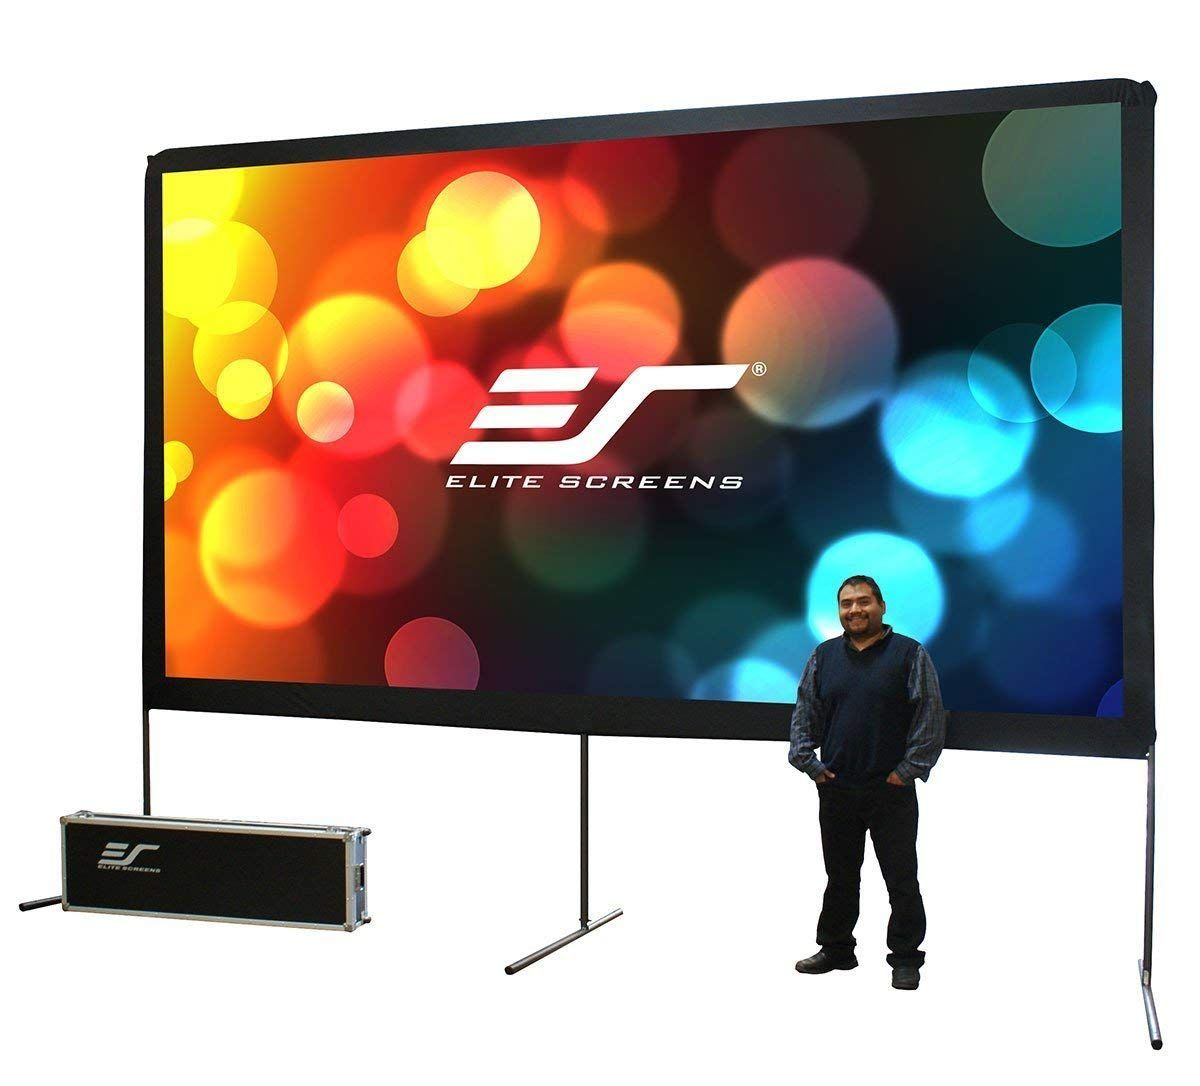 While Watching A Movie Outdoors The Biggest Problem One Faces Is The Light Overshoot And Do Projection Screen Large Projector Screen Portable Projector Screen